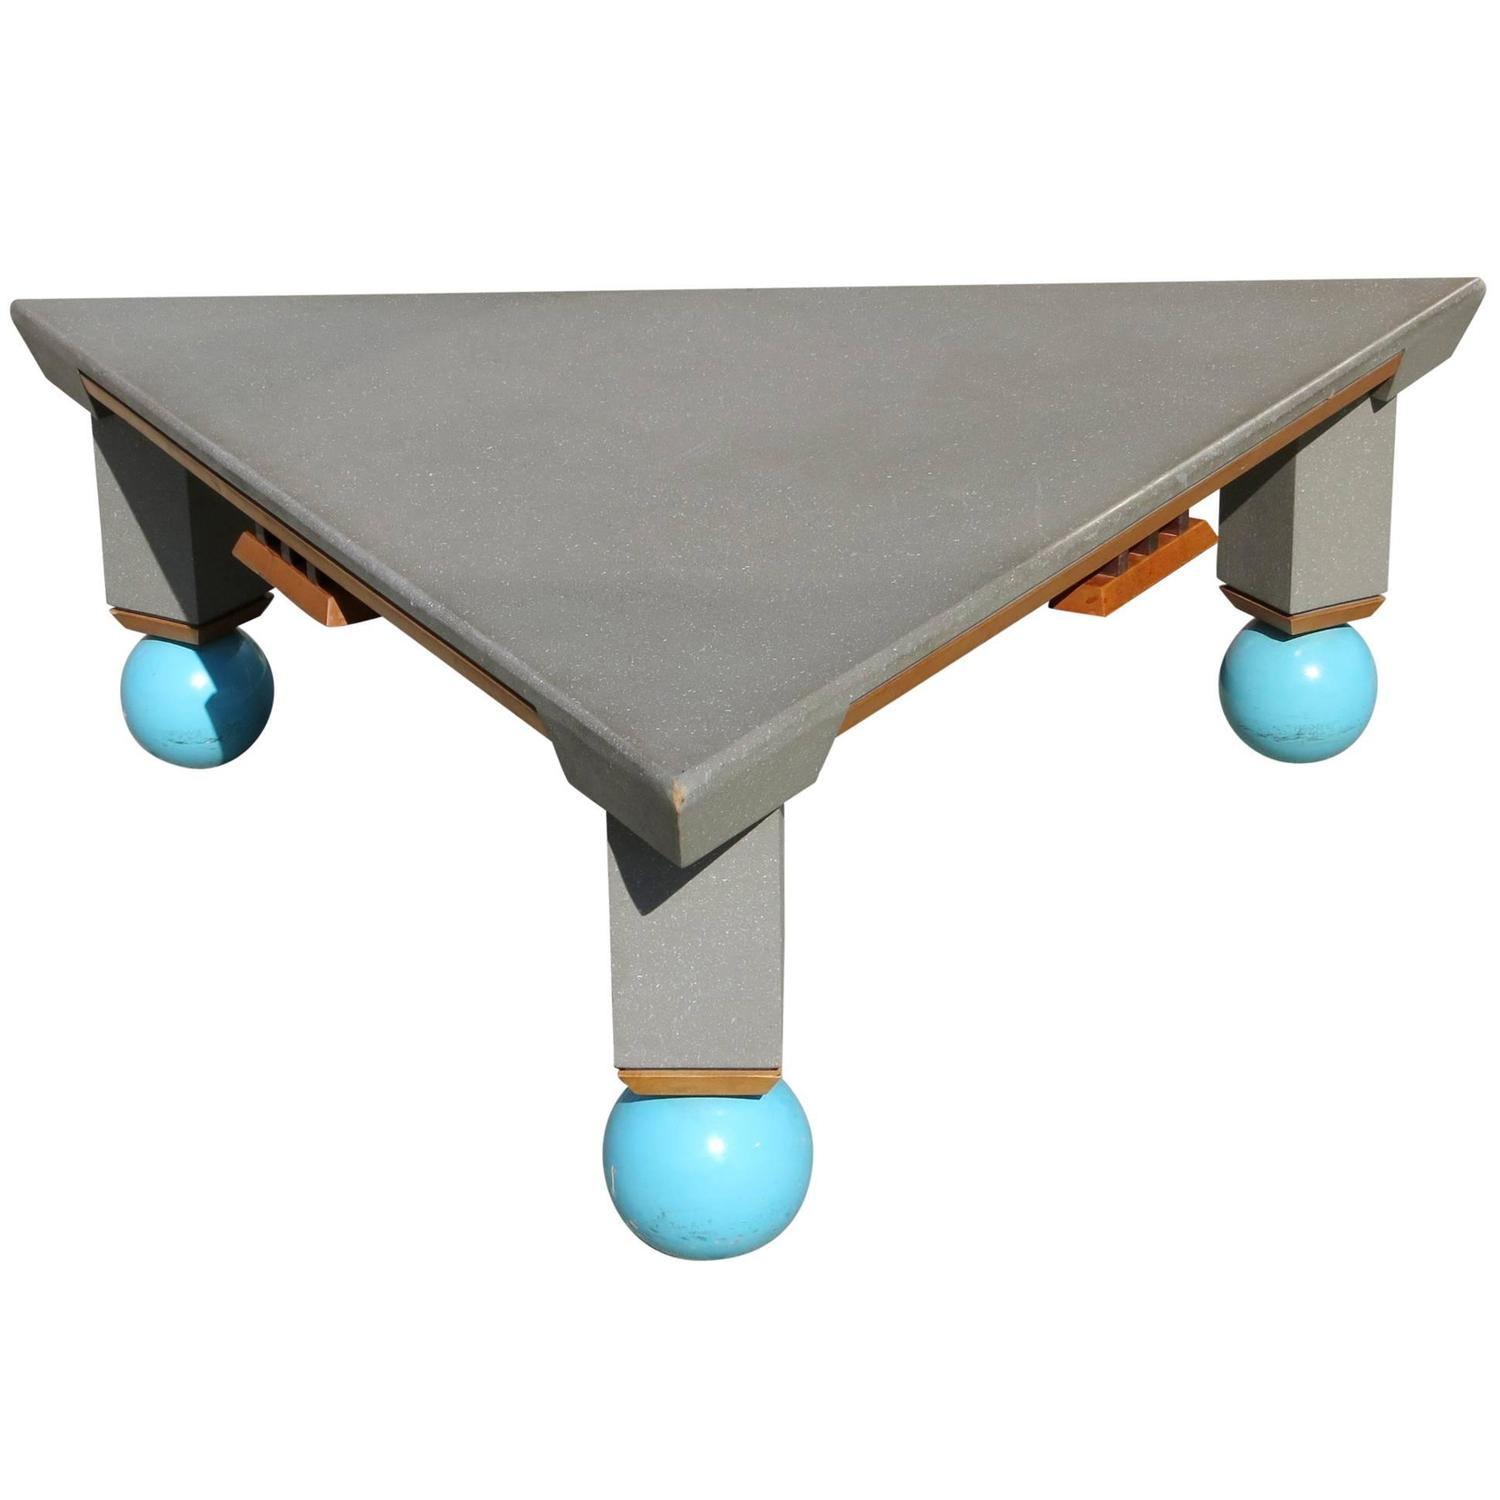 Large Triangle Memphis Coffee Table In The Ettore Sottsass Style For Sale At 1stdibs